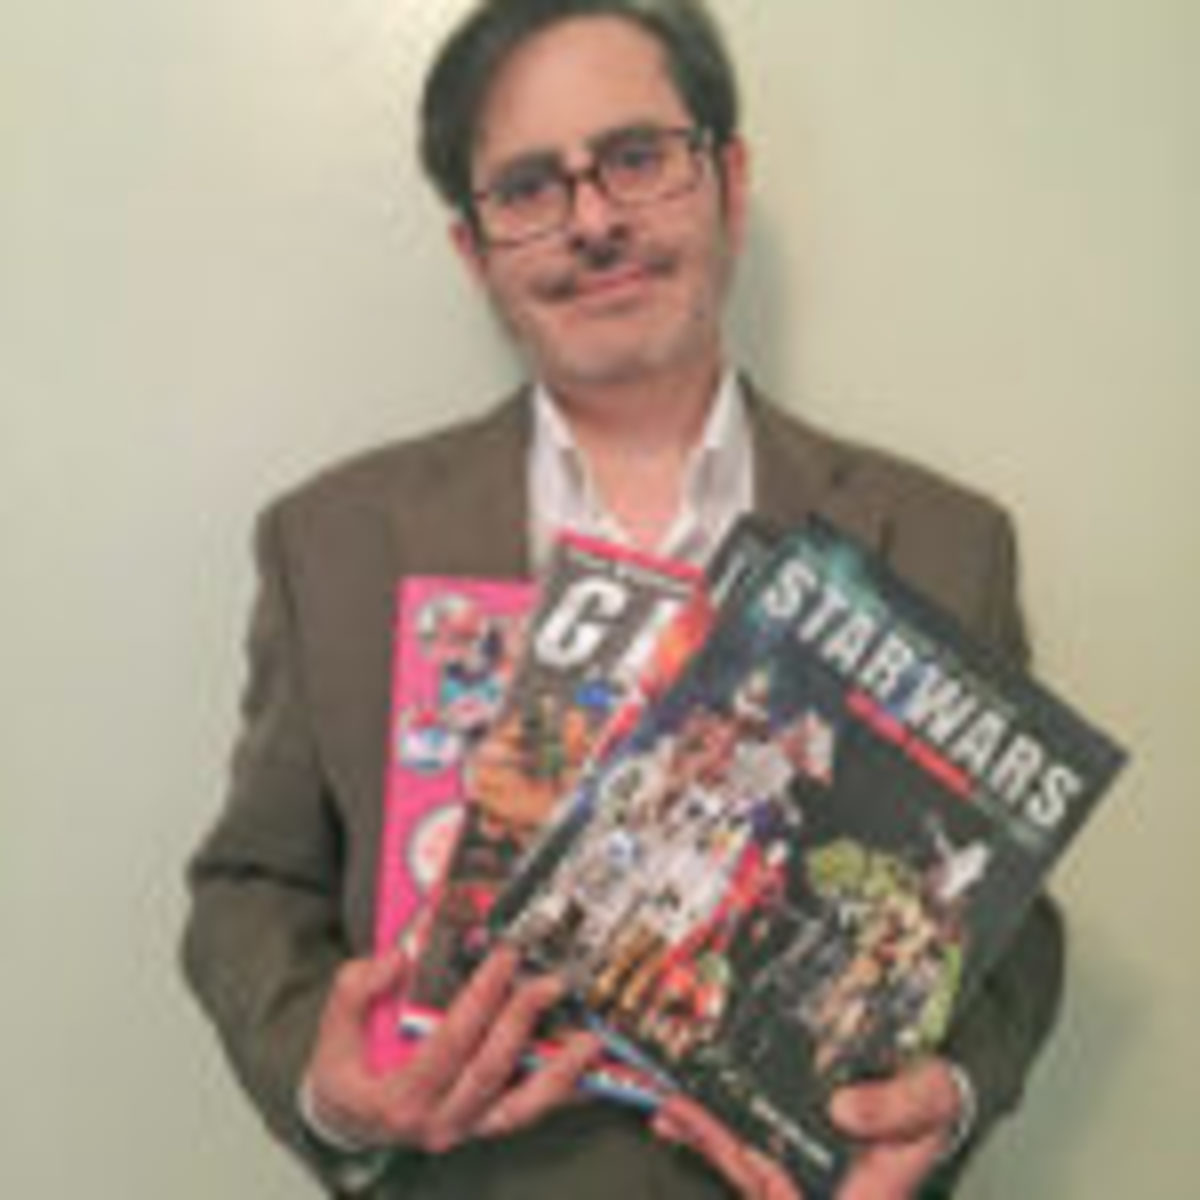 Author and toy expert Mark Bellomo. Photo courtesy Krause Publications.